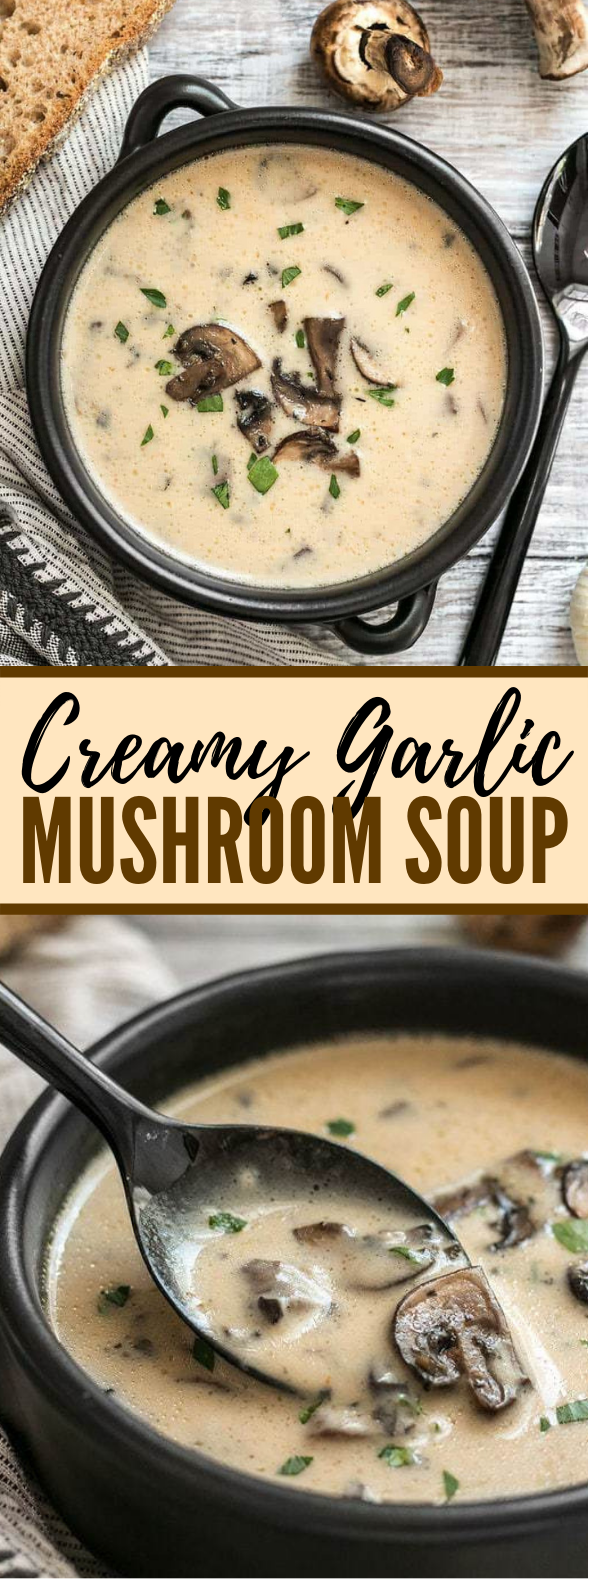 CREAMY GARLIC MUSHROOM SOUP #vegetarian #vegetables